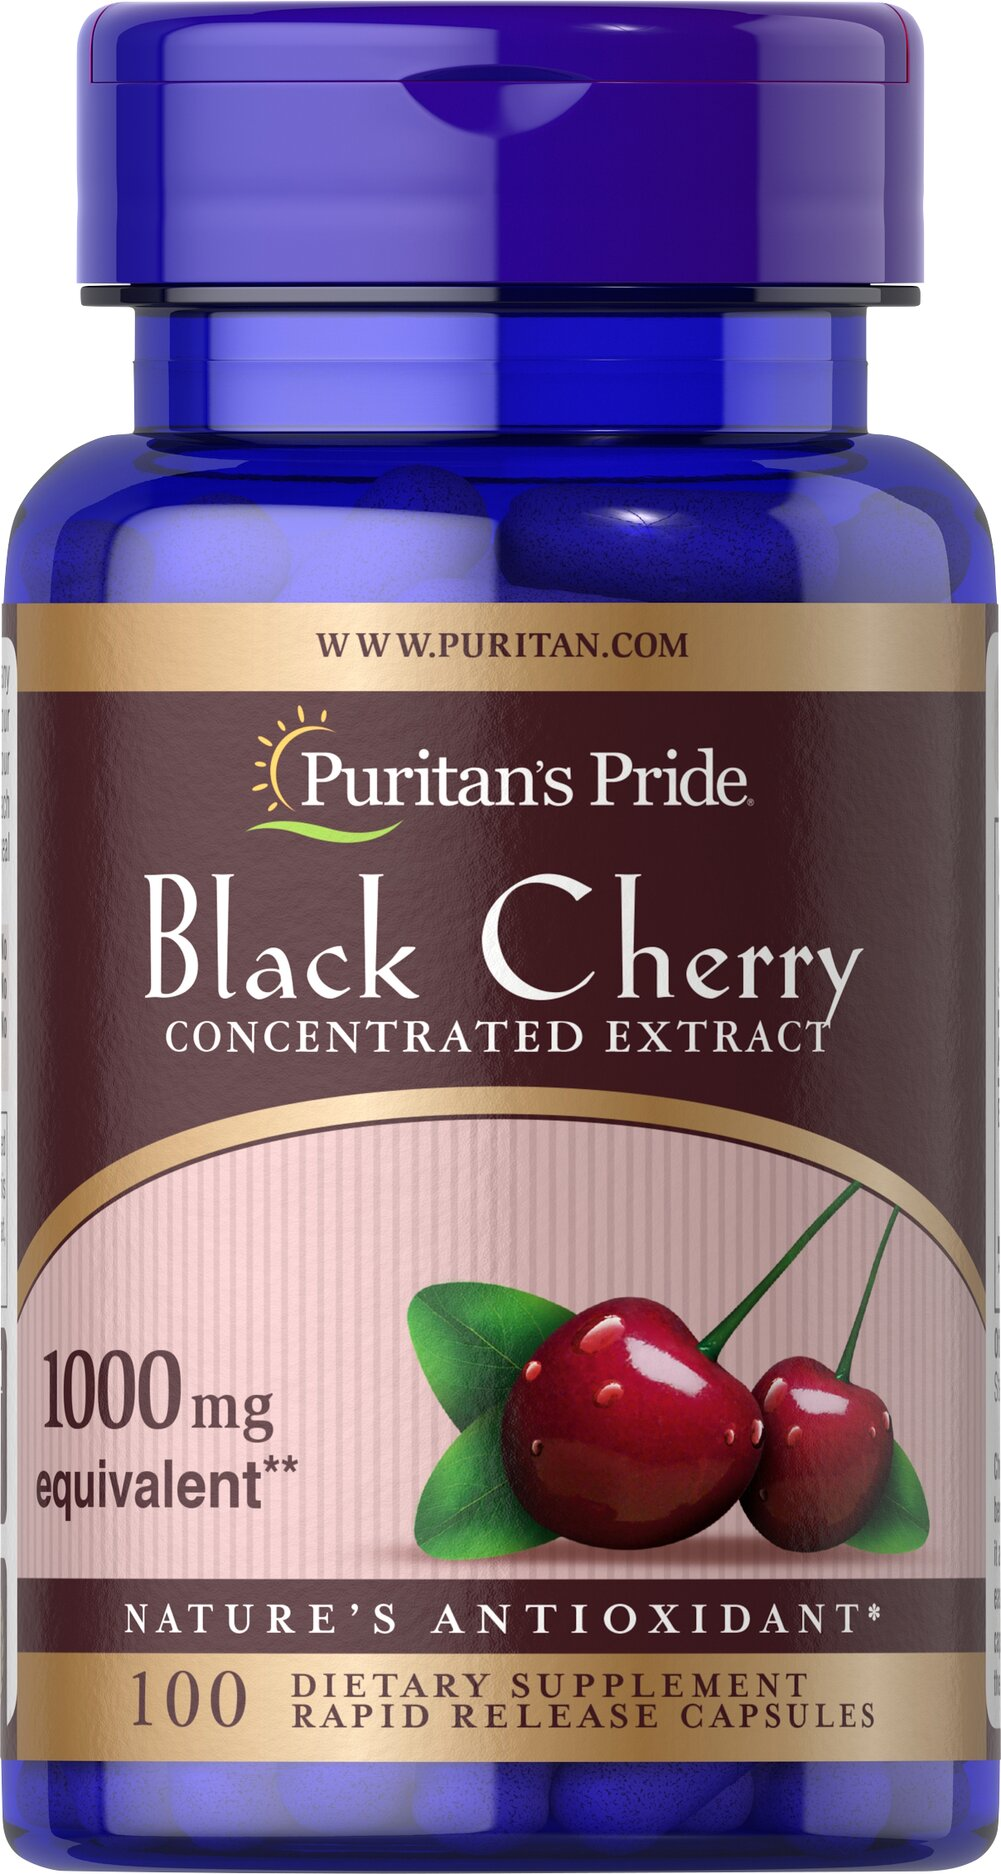 Black Cherry 1000 mg <p>Cherries are known for their natural content of antioxidants and other beneficial components. Black Cherry's beneficial compounds help to give it a rich, dark color that is bursting with nutritional goodness. Now you can easily obtain the benefits of Black Cherry in our convenient Black Cherry capsules. Each serving contains a 4:1 extract of Black Cherry to help retain the most important constituents.</p> 100 Capsules 1000 mg $4.39